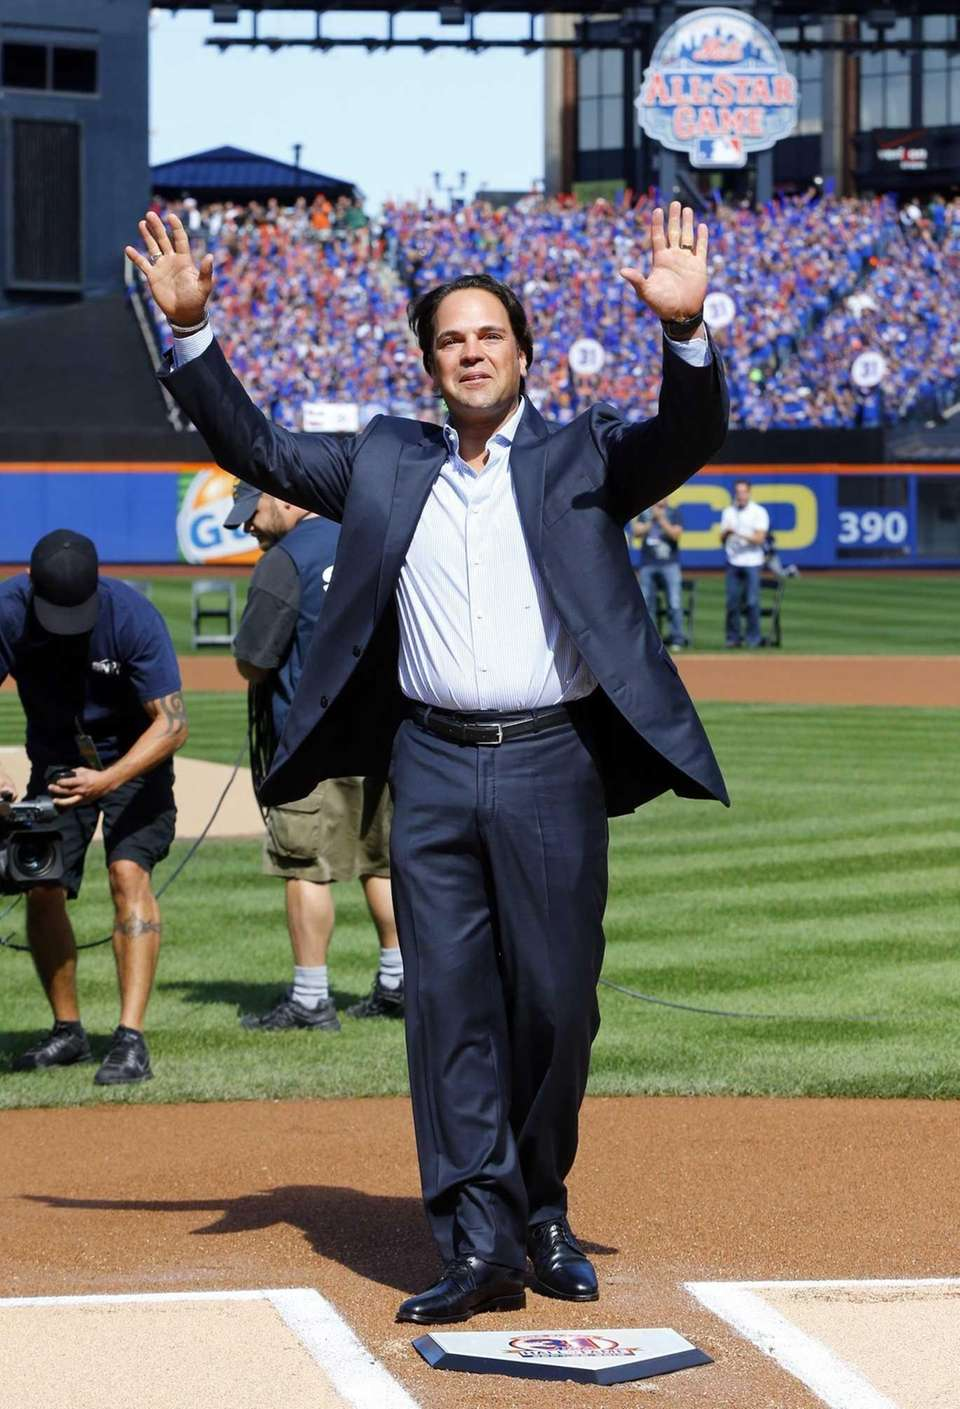 Mike Piazza waves to the crowd as he